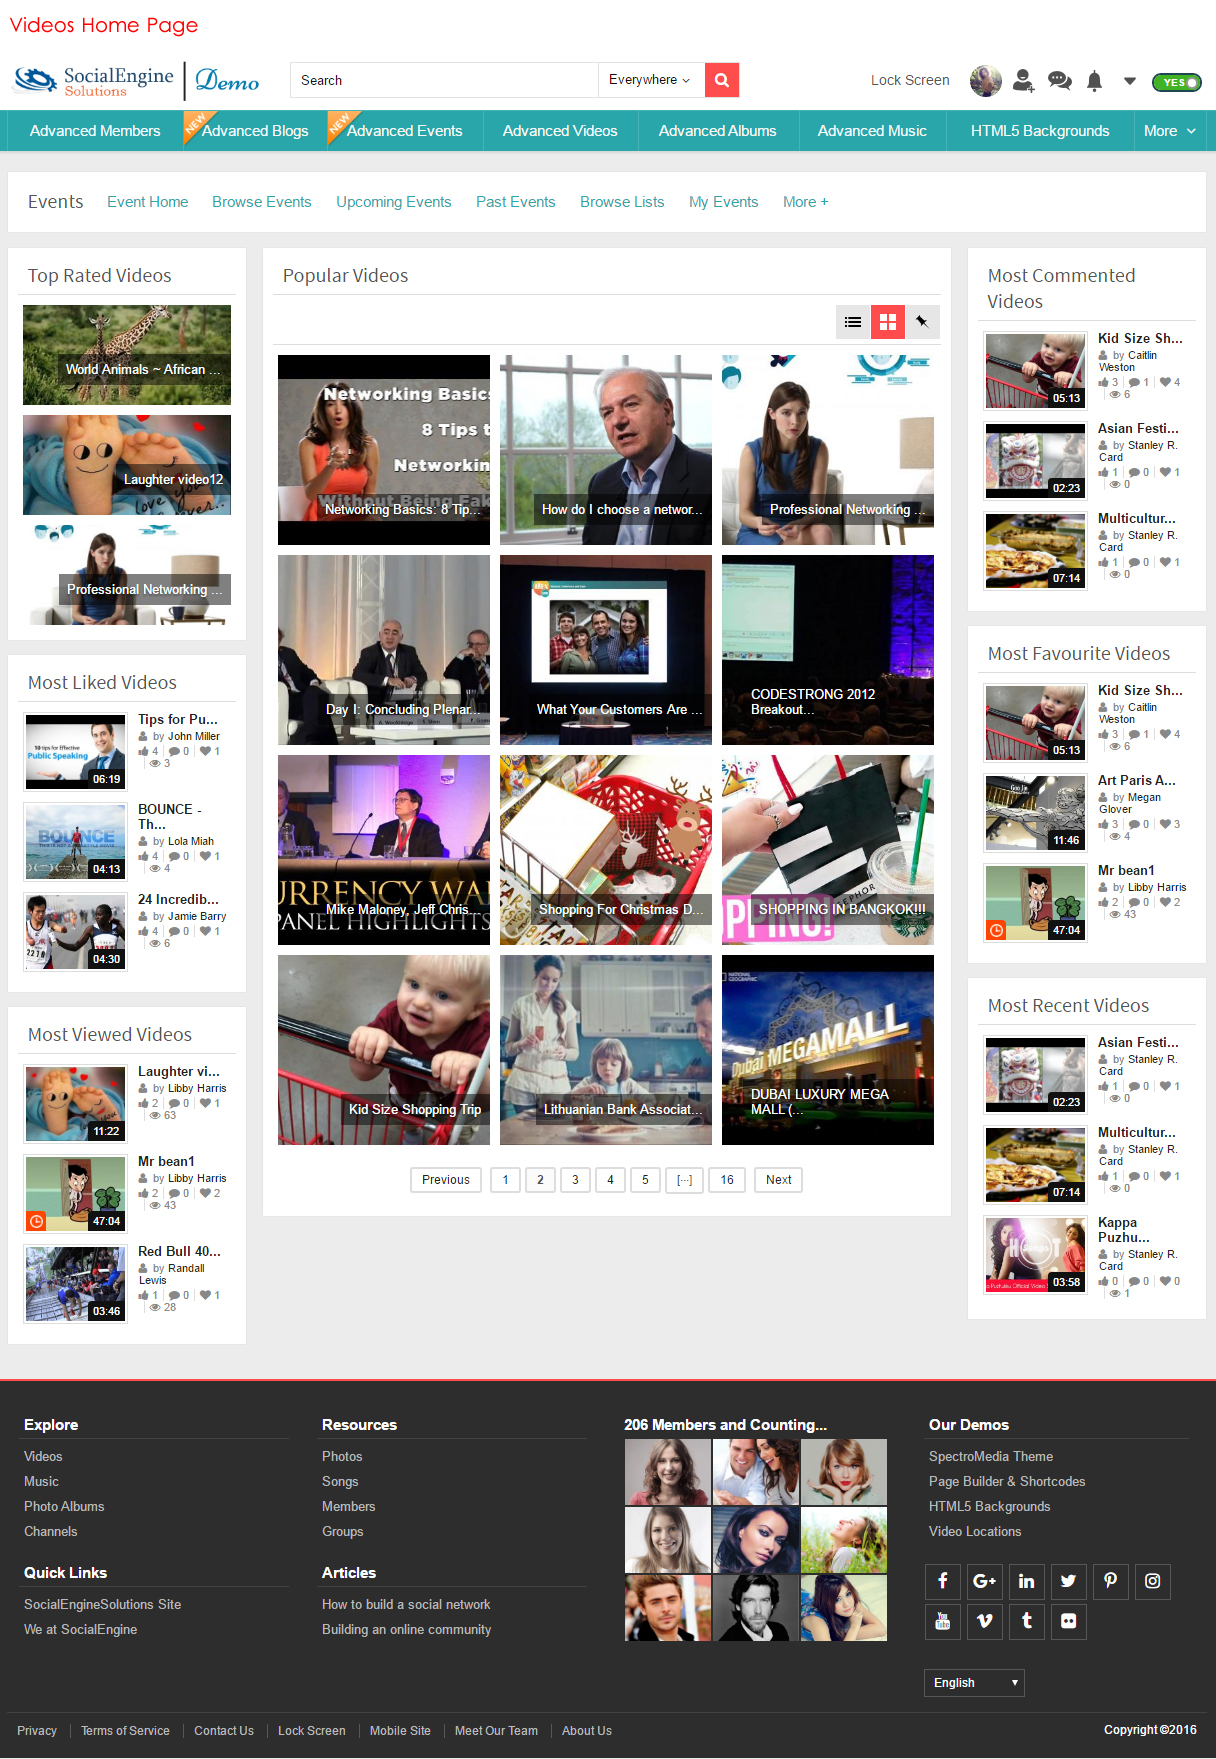 Videos Home Page